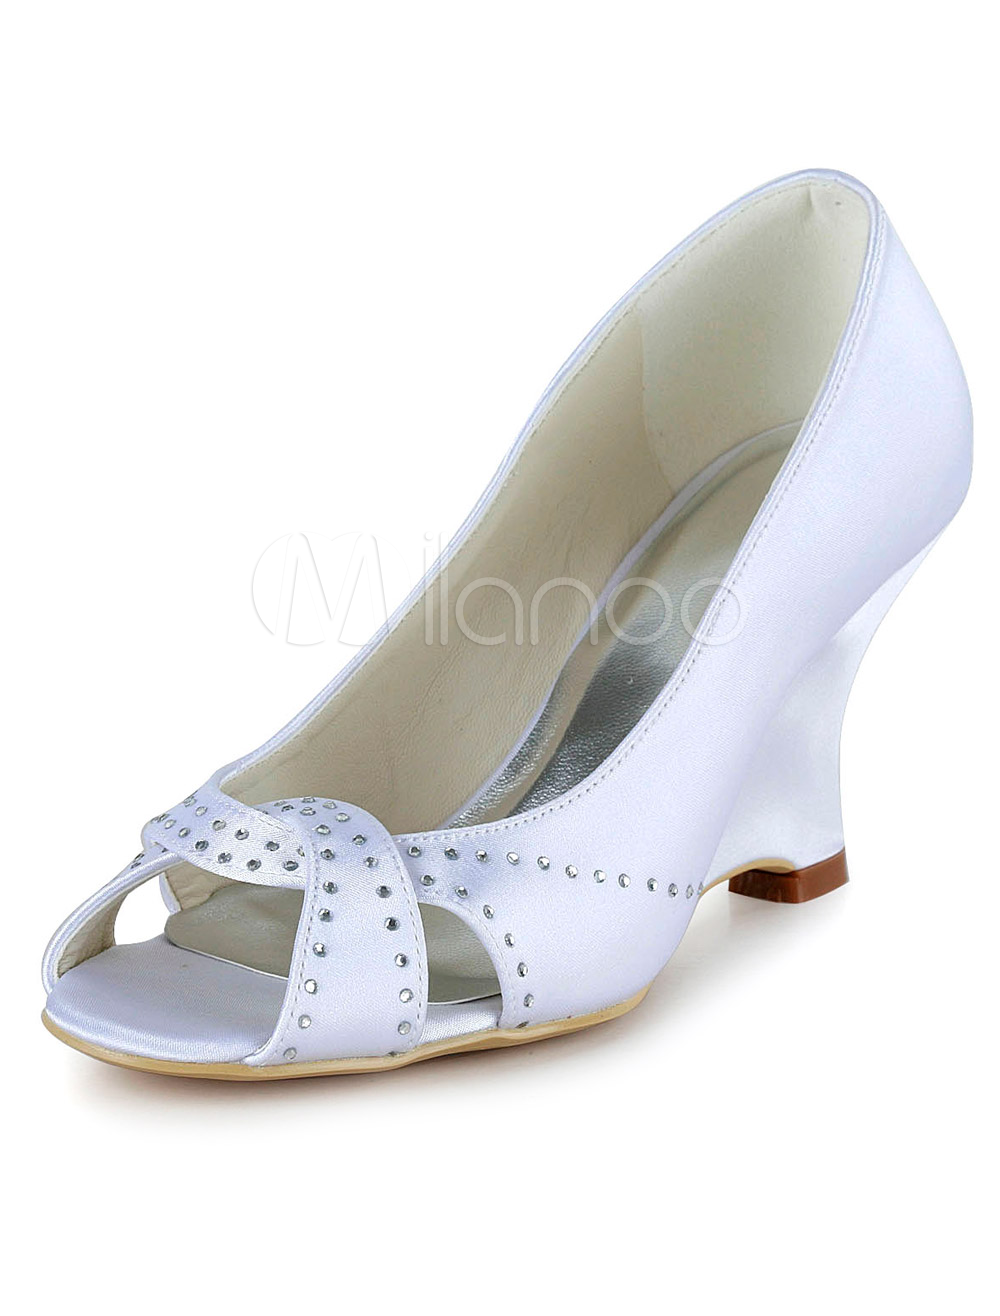 chaussure de marie blanche talon compens et peep toe avec strass milanoocom - Chaussures Compenses Blanches Mariage